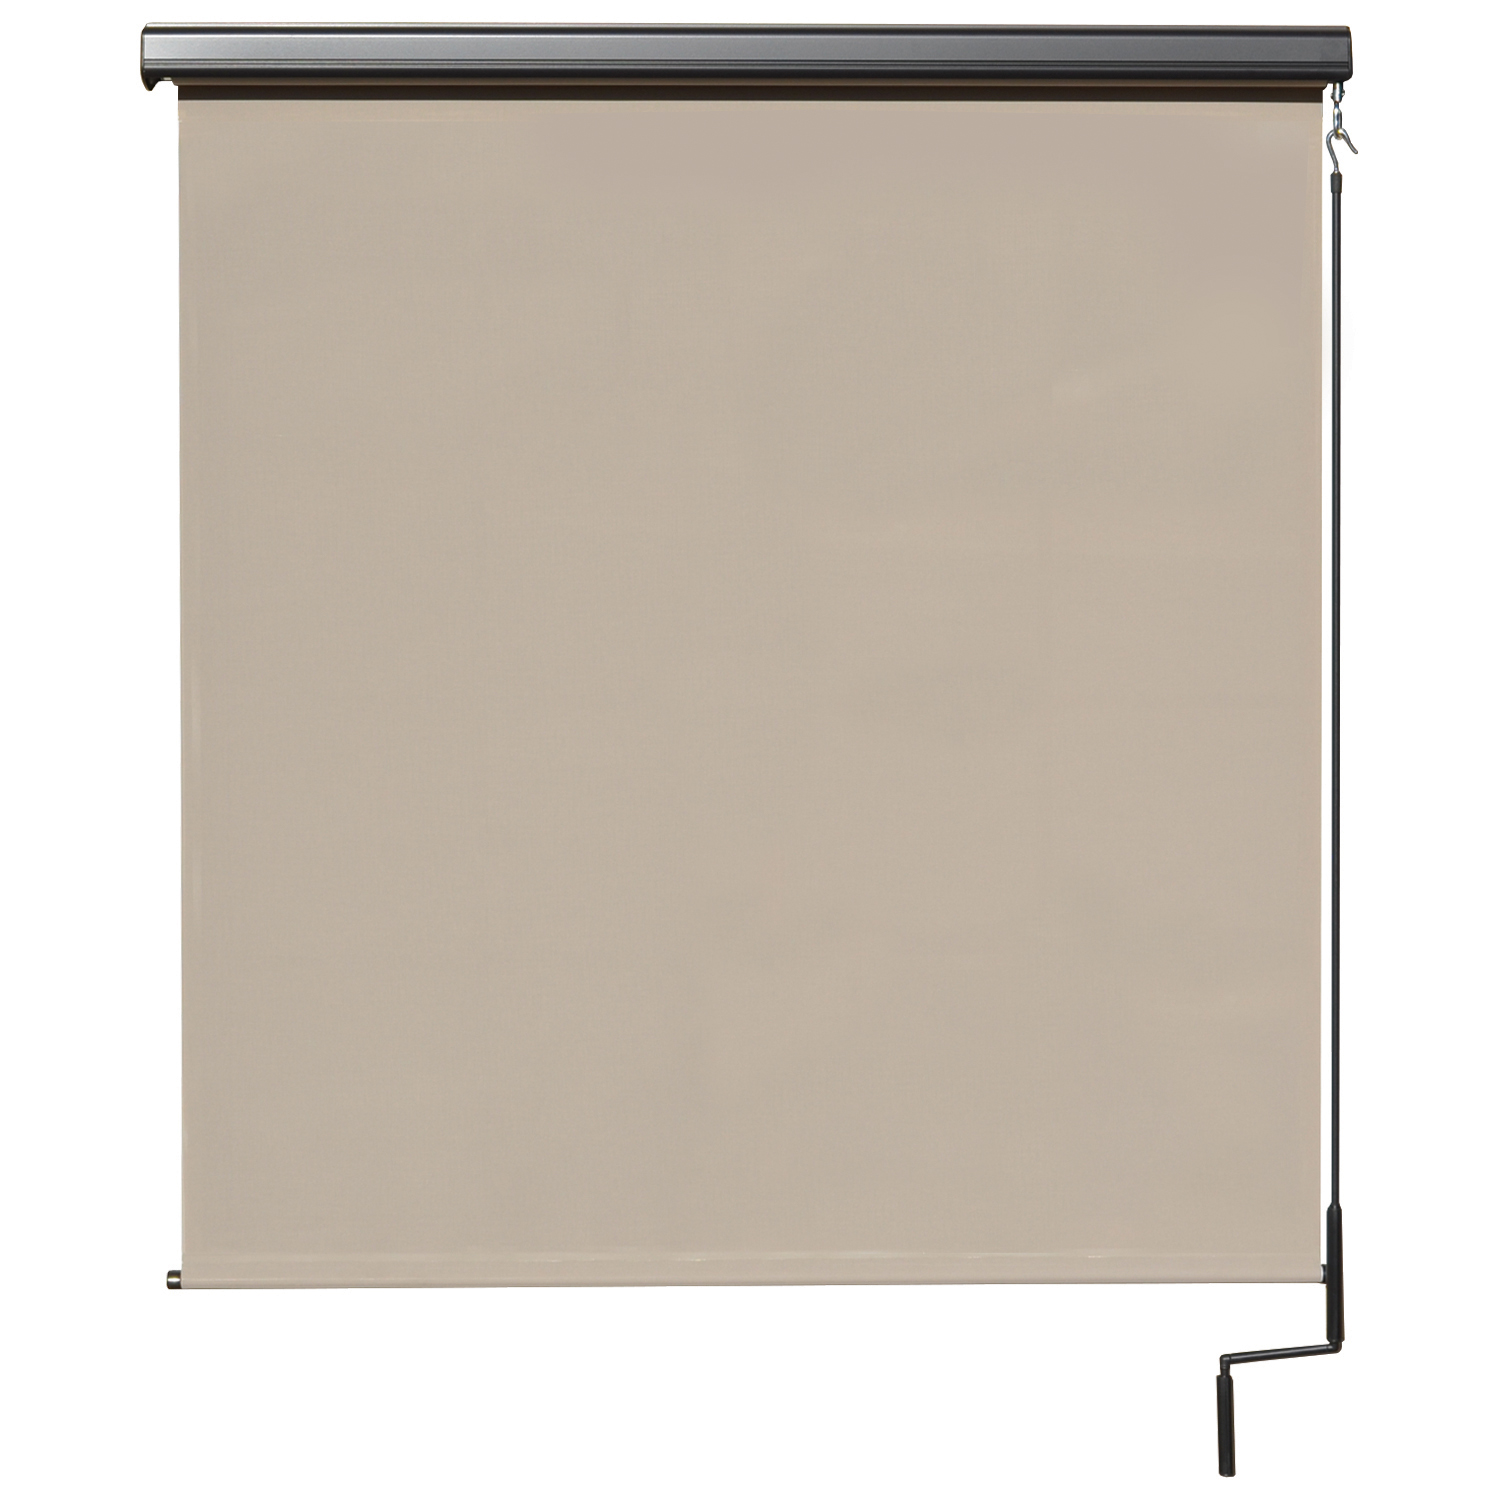 Premier Cordless Outdoor Sun Shade with Protective Valance, 6' W x 8' L, Maple